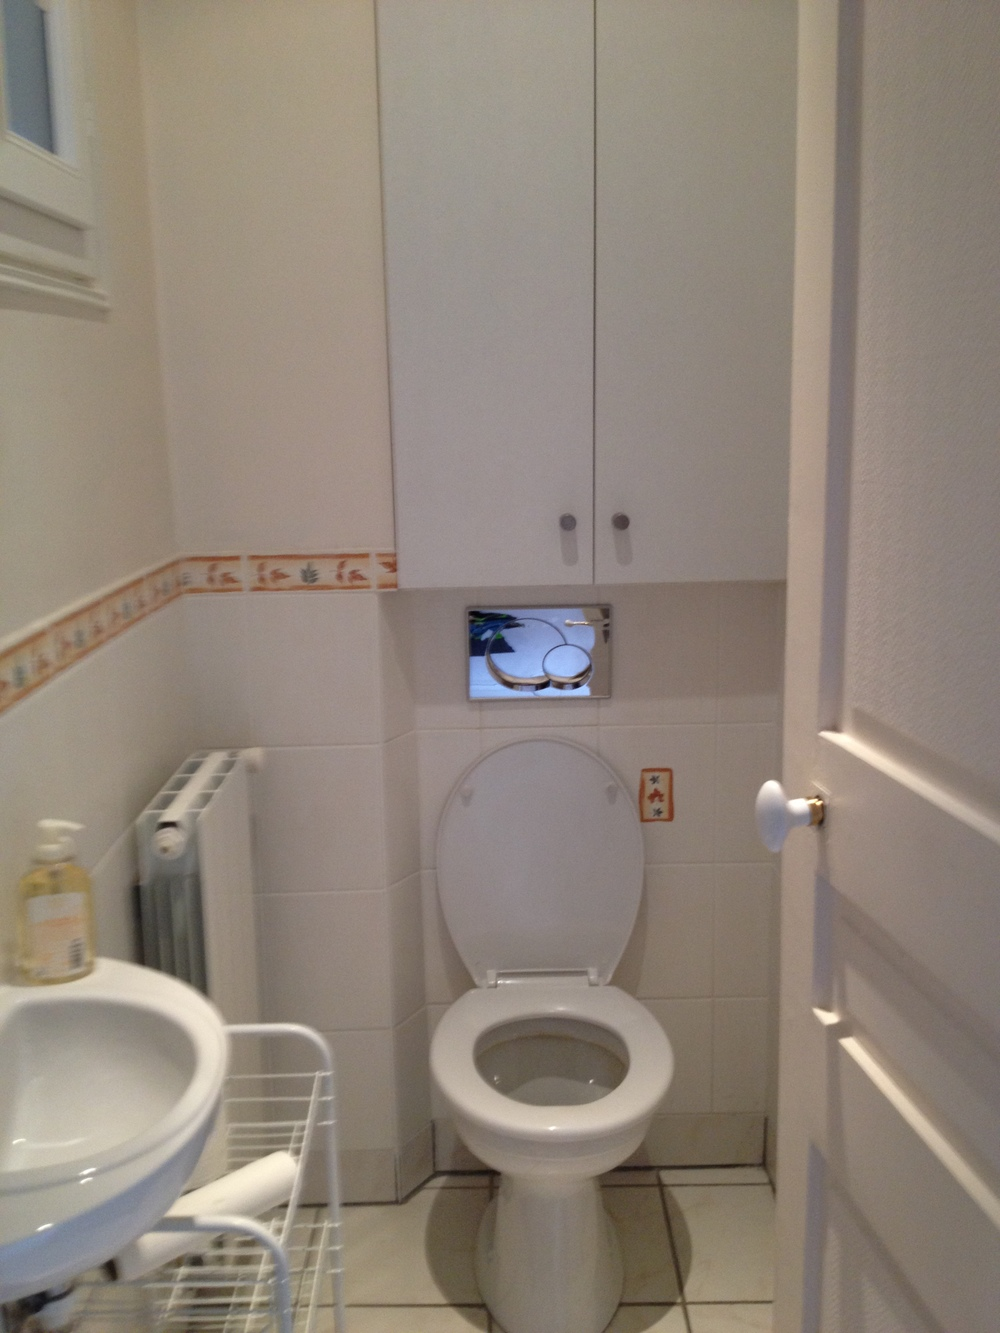 Only one apartment with a toilet & sink in the same room